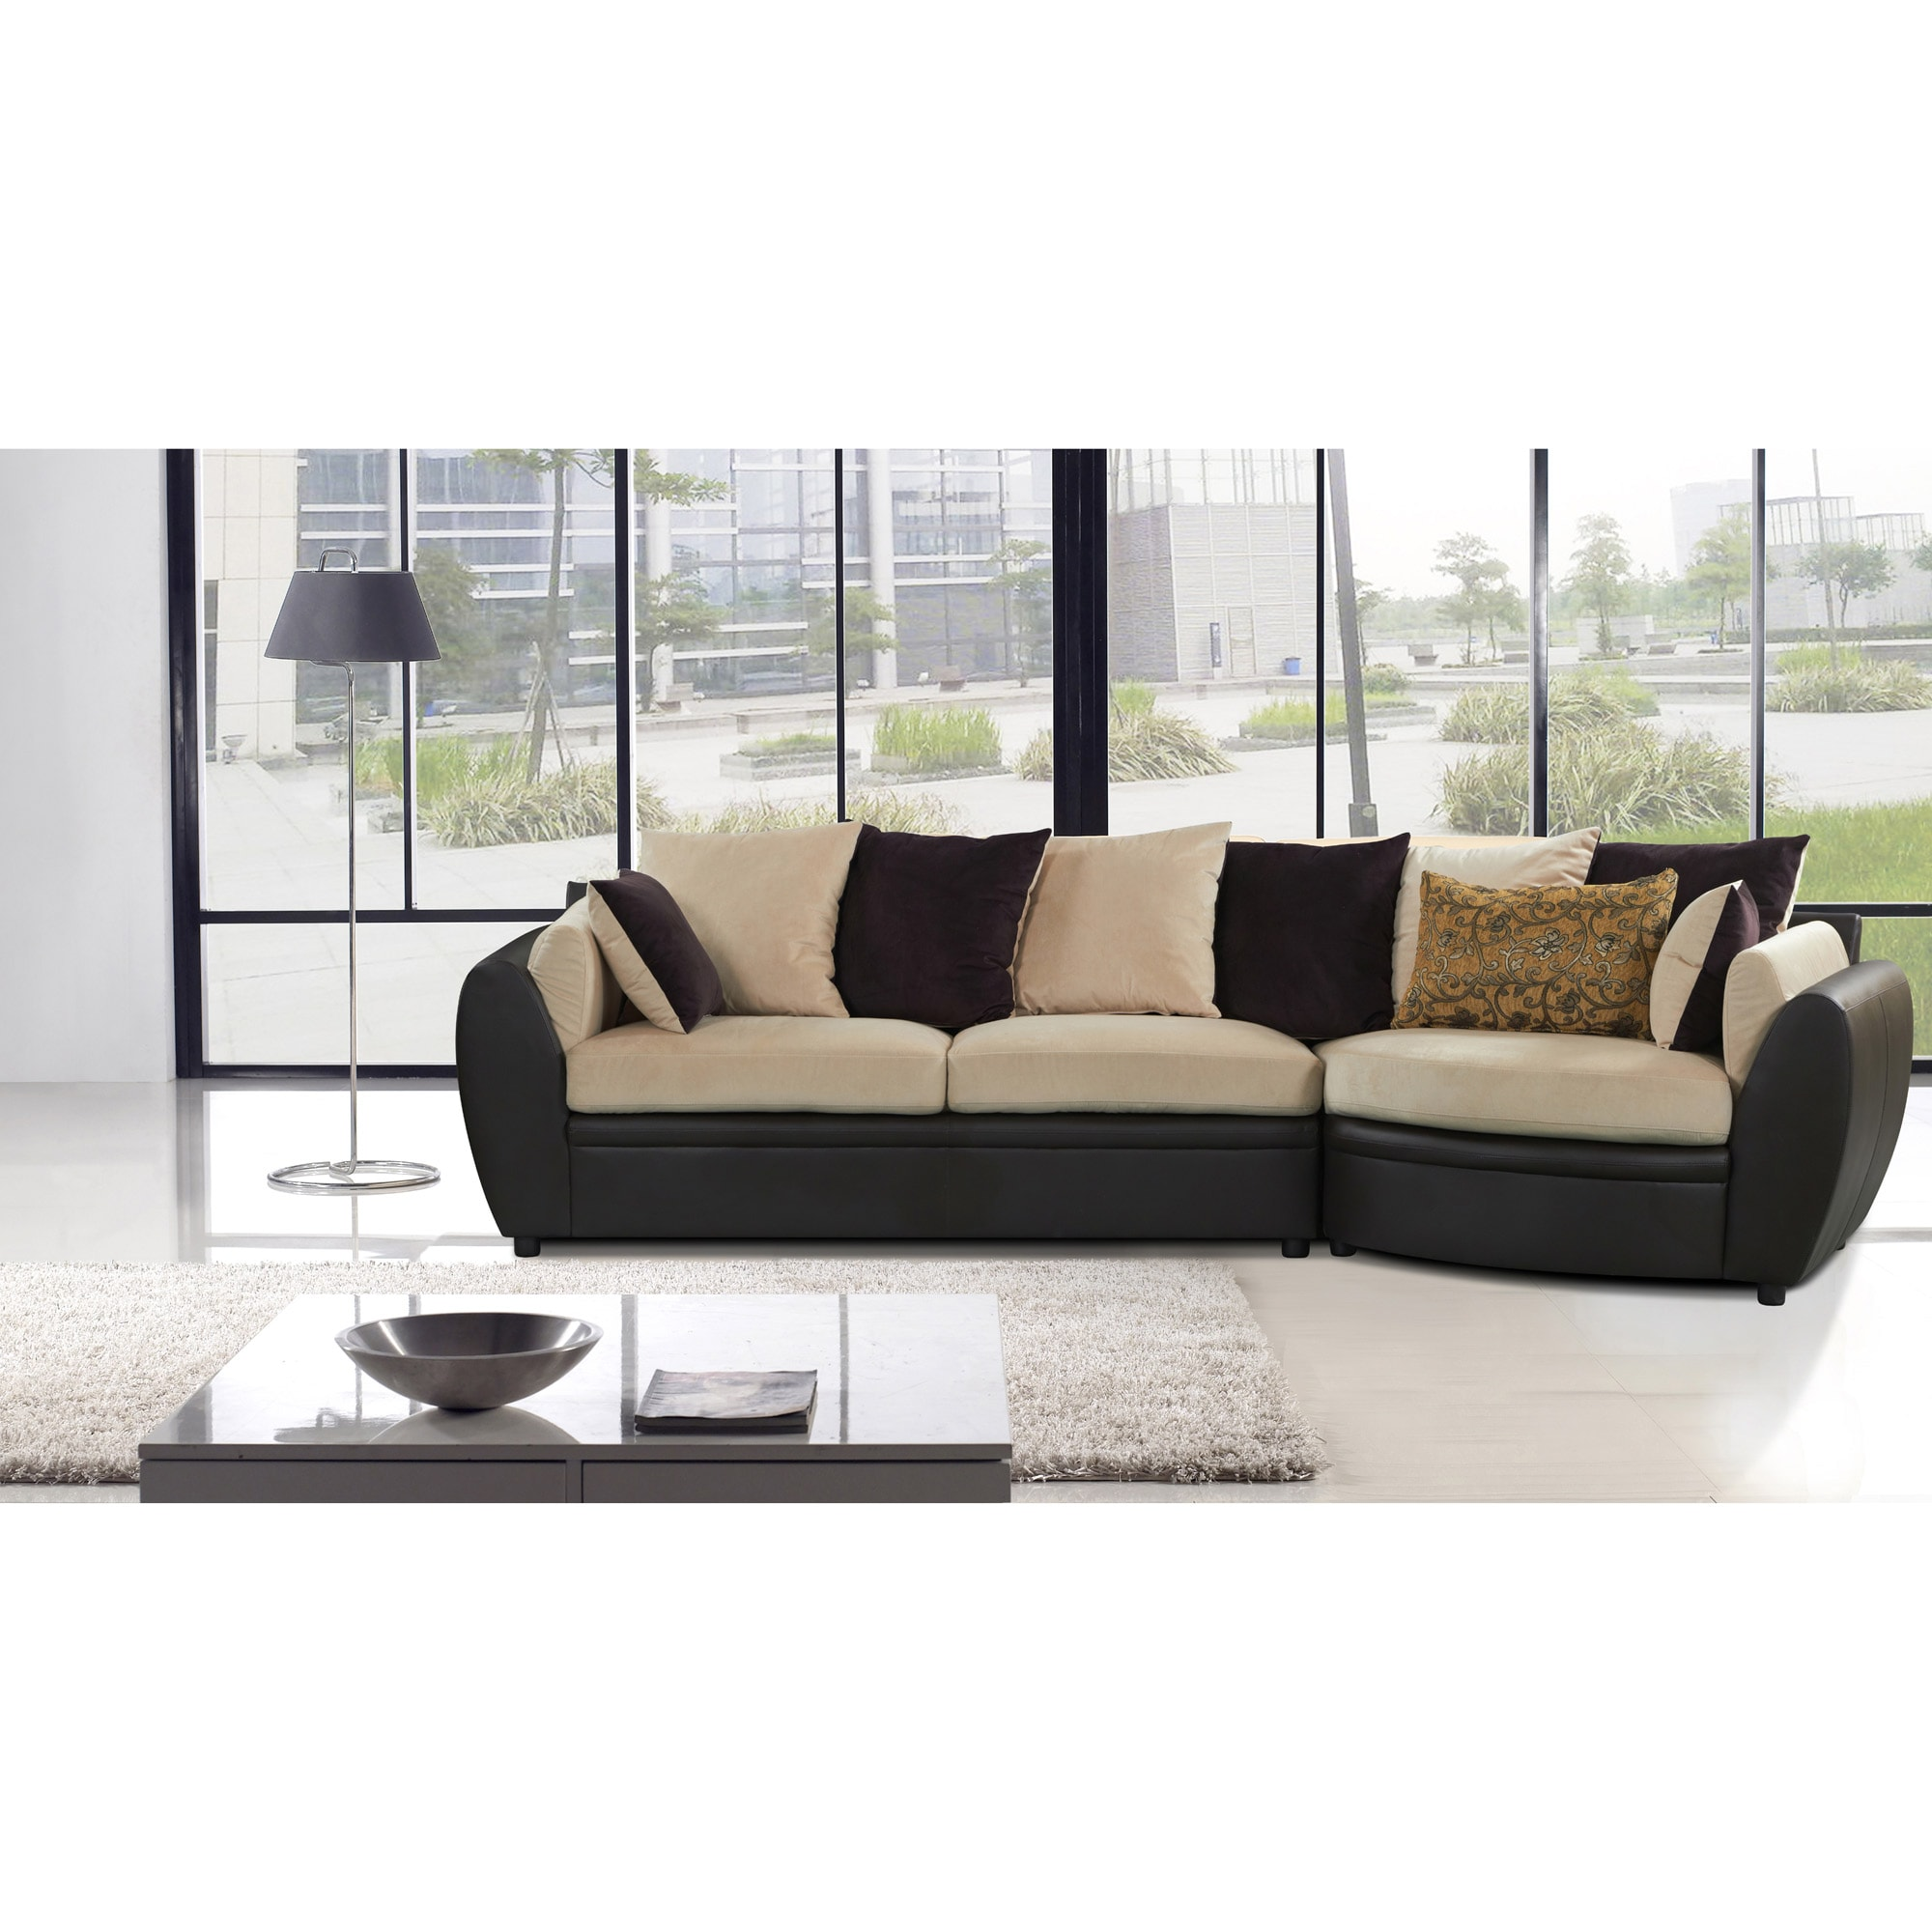 Sofa Take Home Today Loreta 2 Pc Sectional Sofa Set